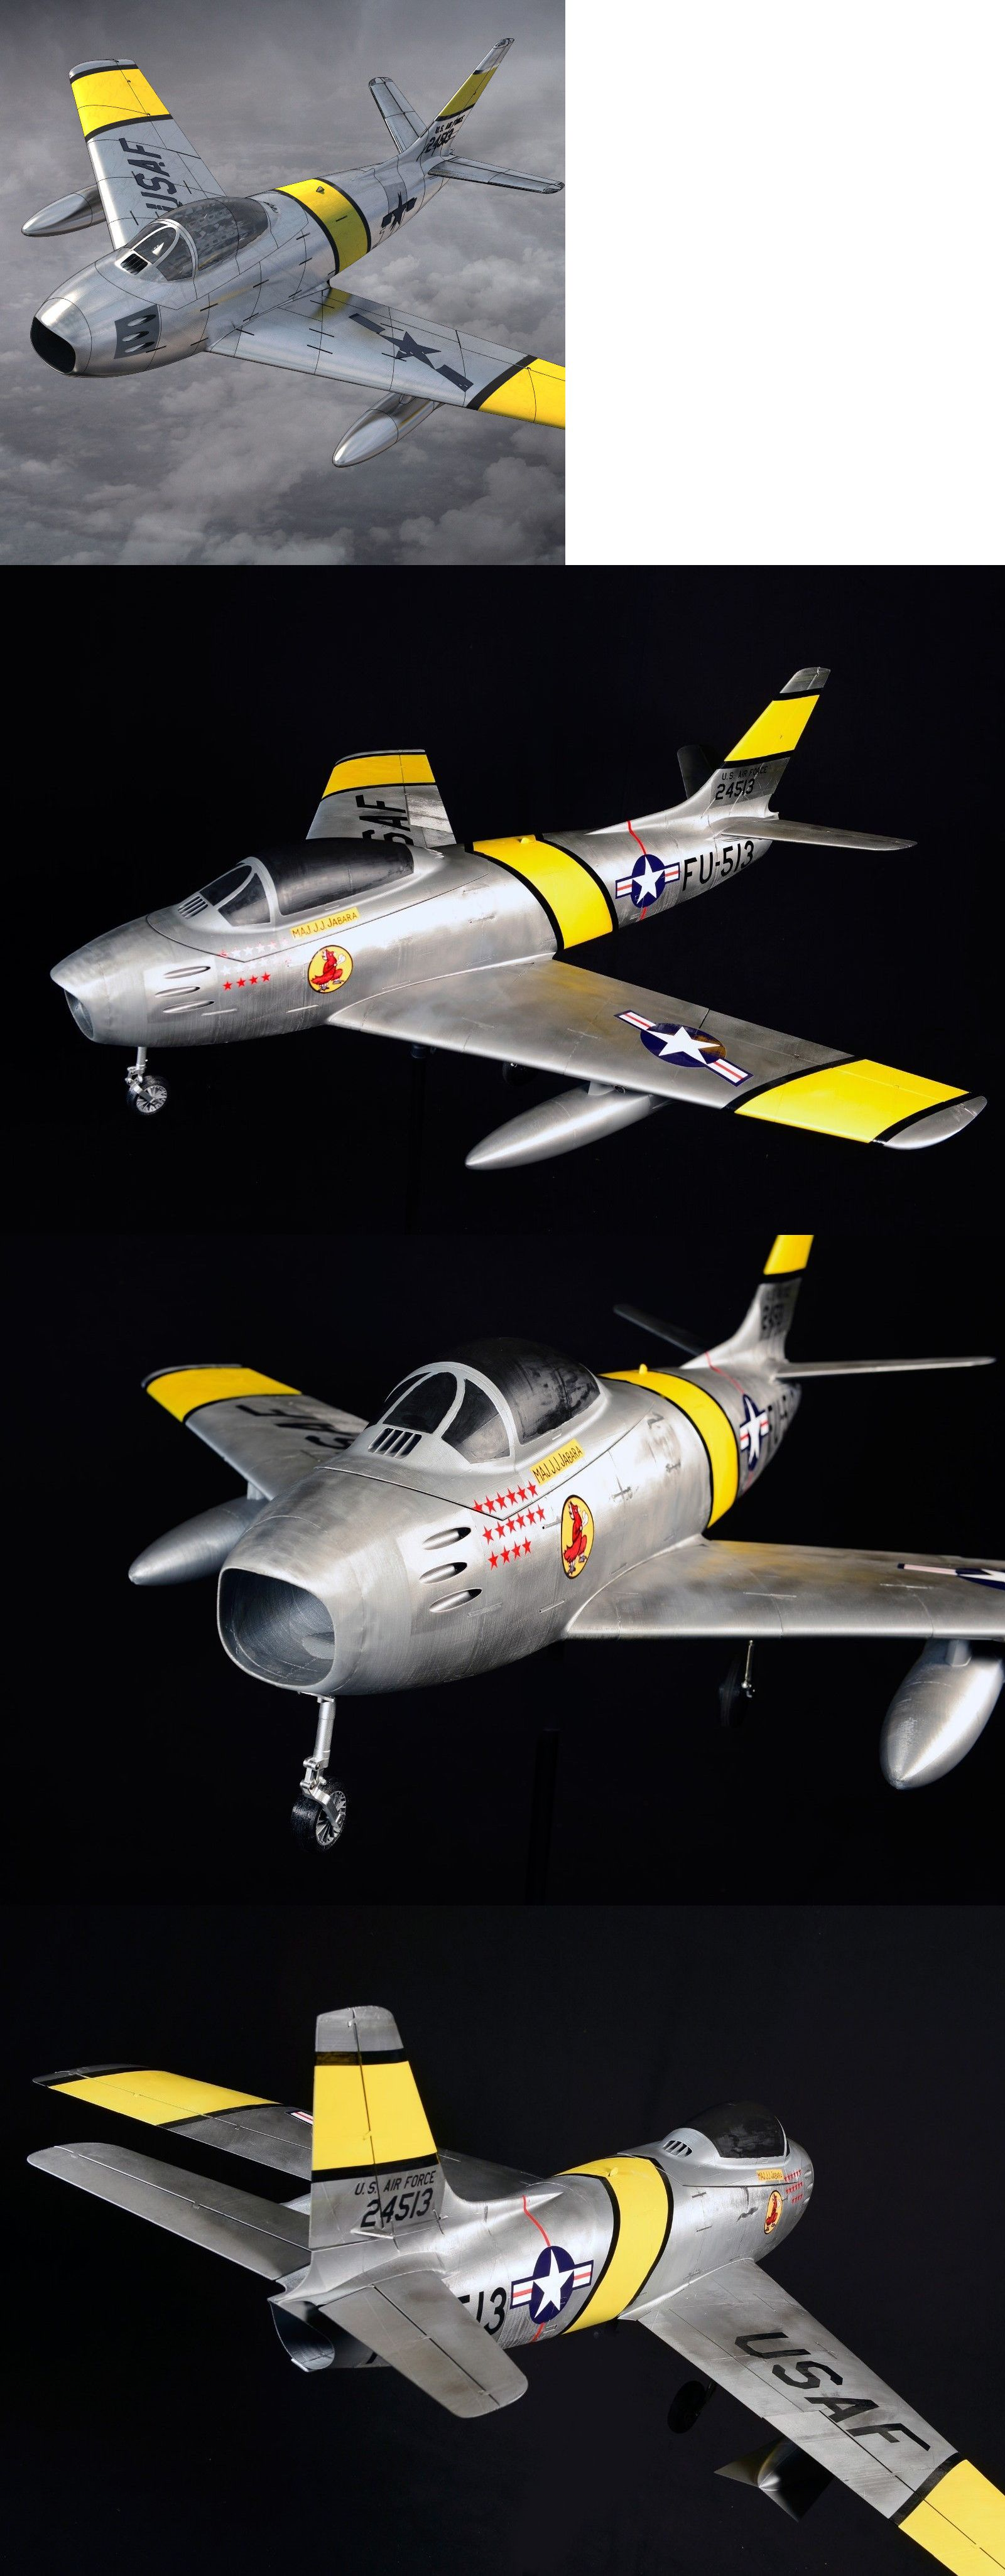 Airplanes 182182: F-86 Sabre 55 3D Printed Rc Edf Ducted Fan Plane